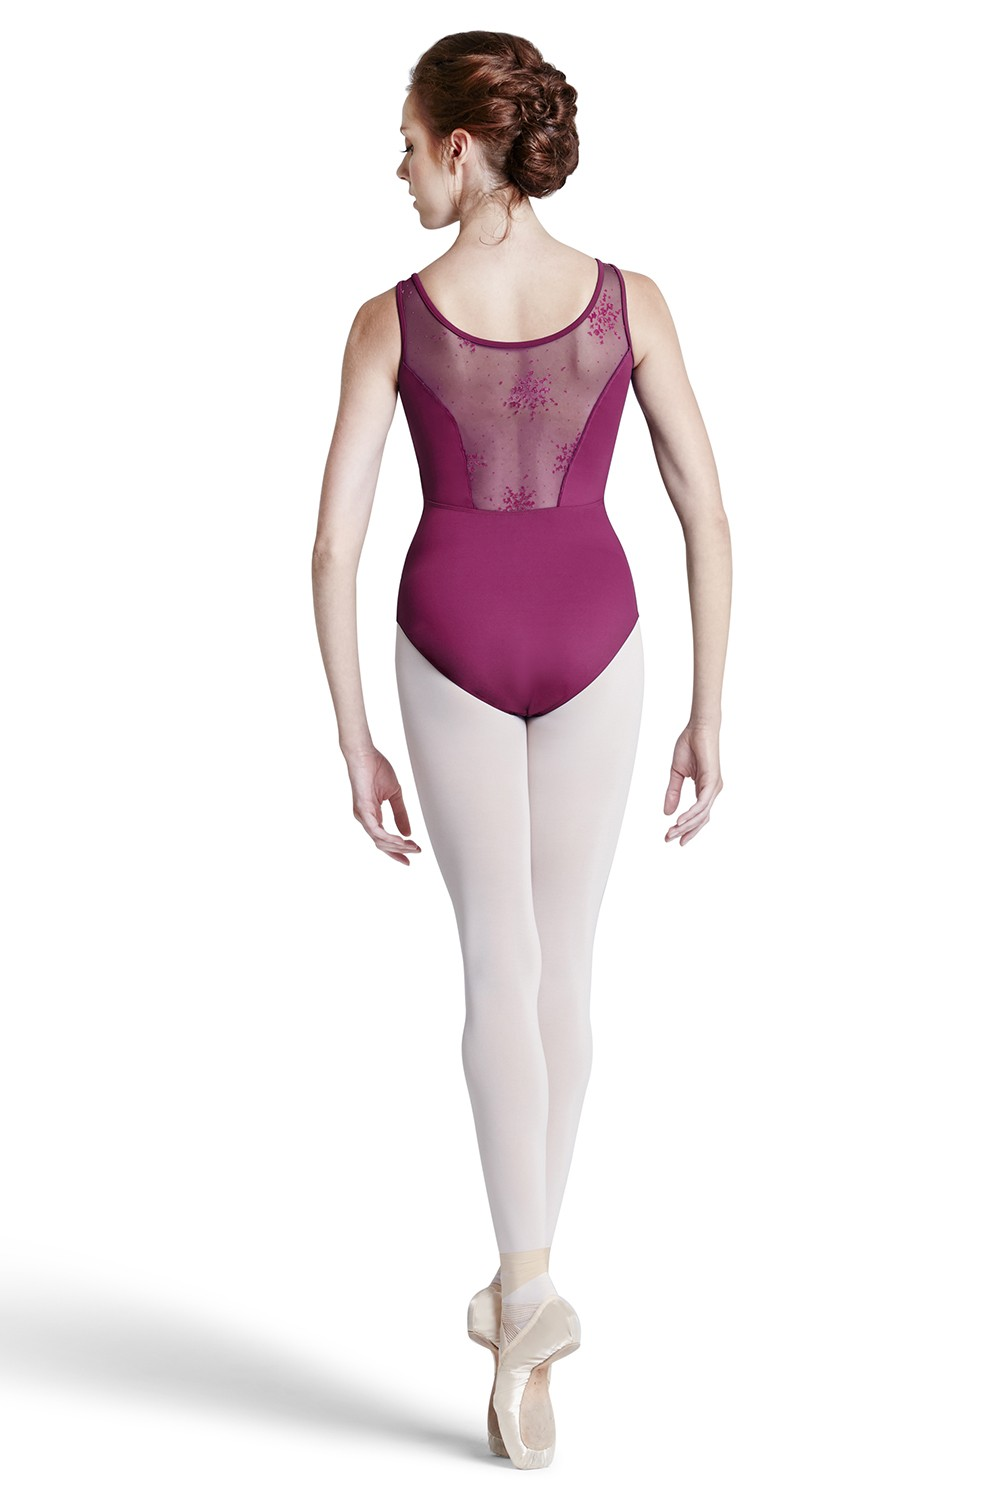 Flock Mesh Tank Leotard Women's Dance Leotards